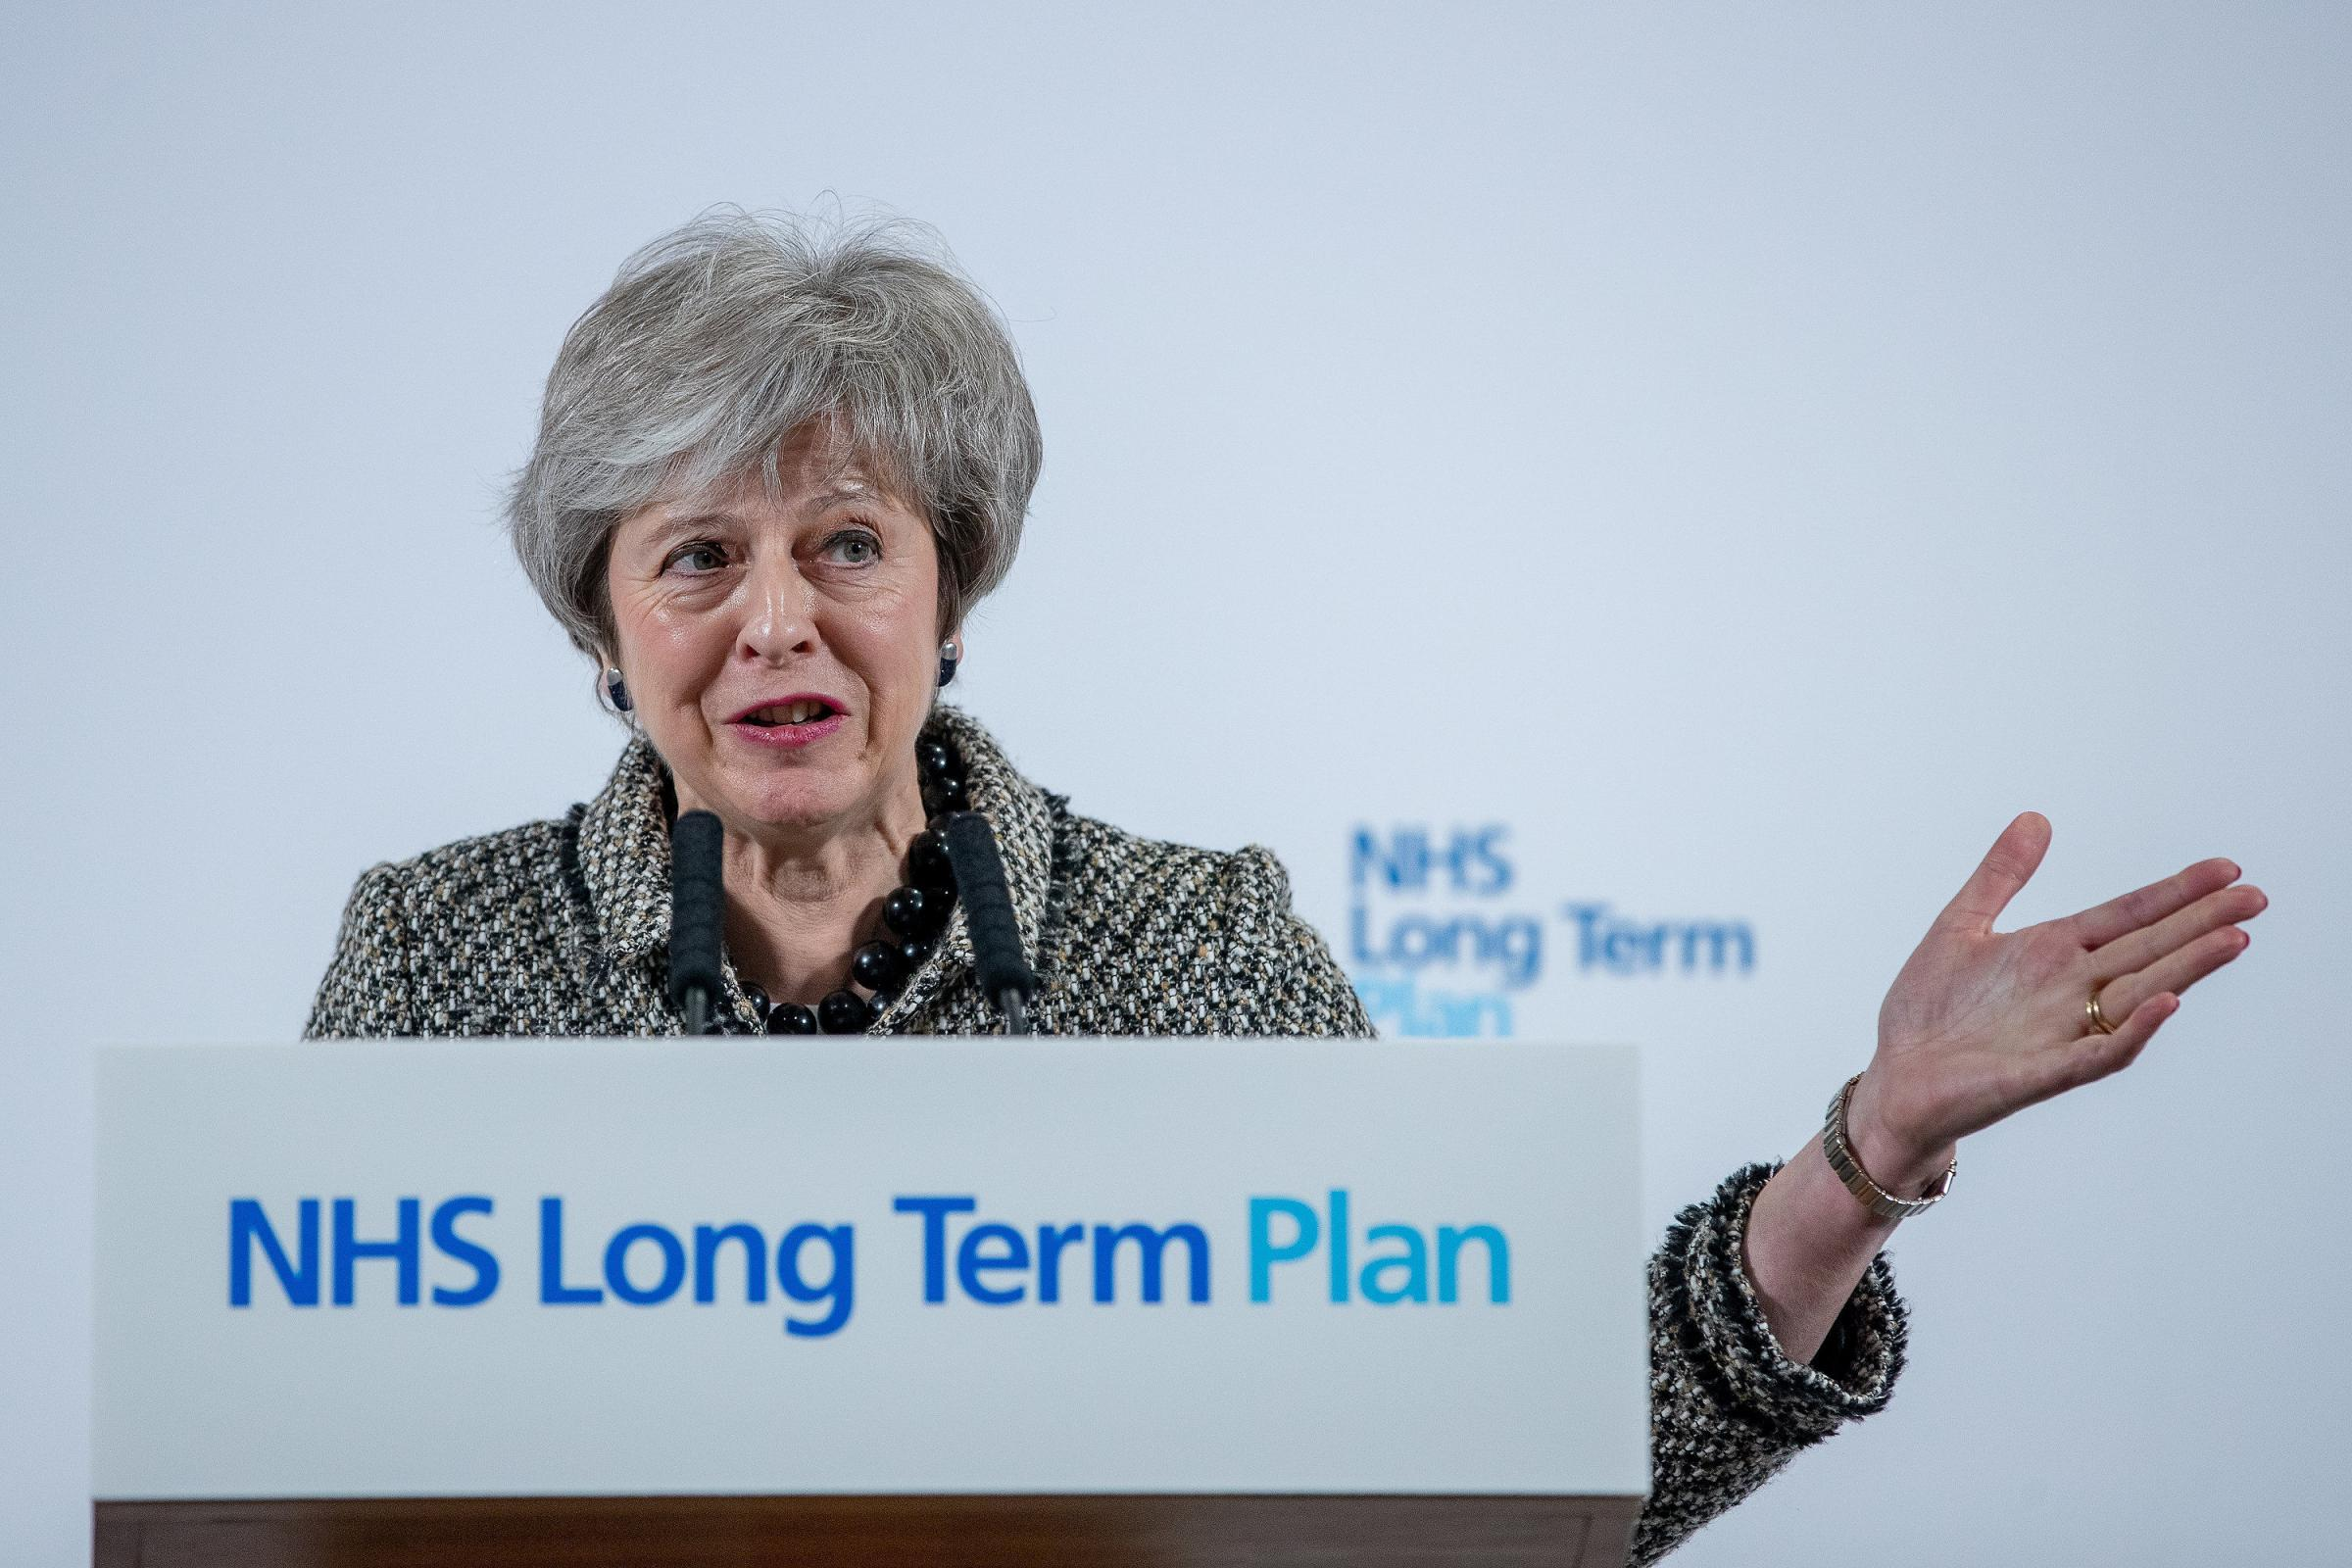 Prime Minister Theresa May speaking at Alder Hey Children's Hospital, Liverpool during her visit where she launched the NHS Long Term Plan alongside NHS England Chief Executive Simon Stevens. PRESS ASSOCIATION Photo. Picture date: Monday January 7, 20